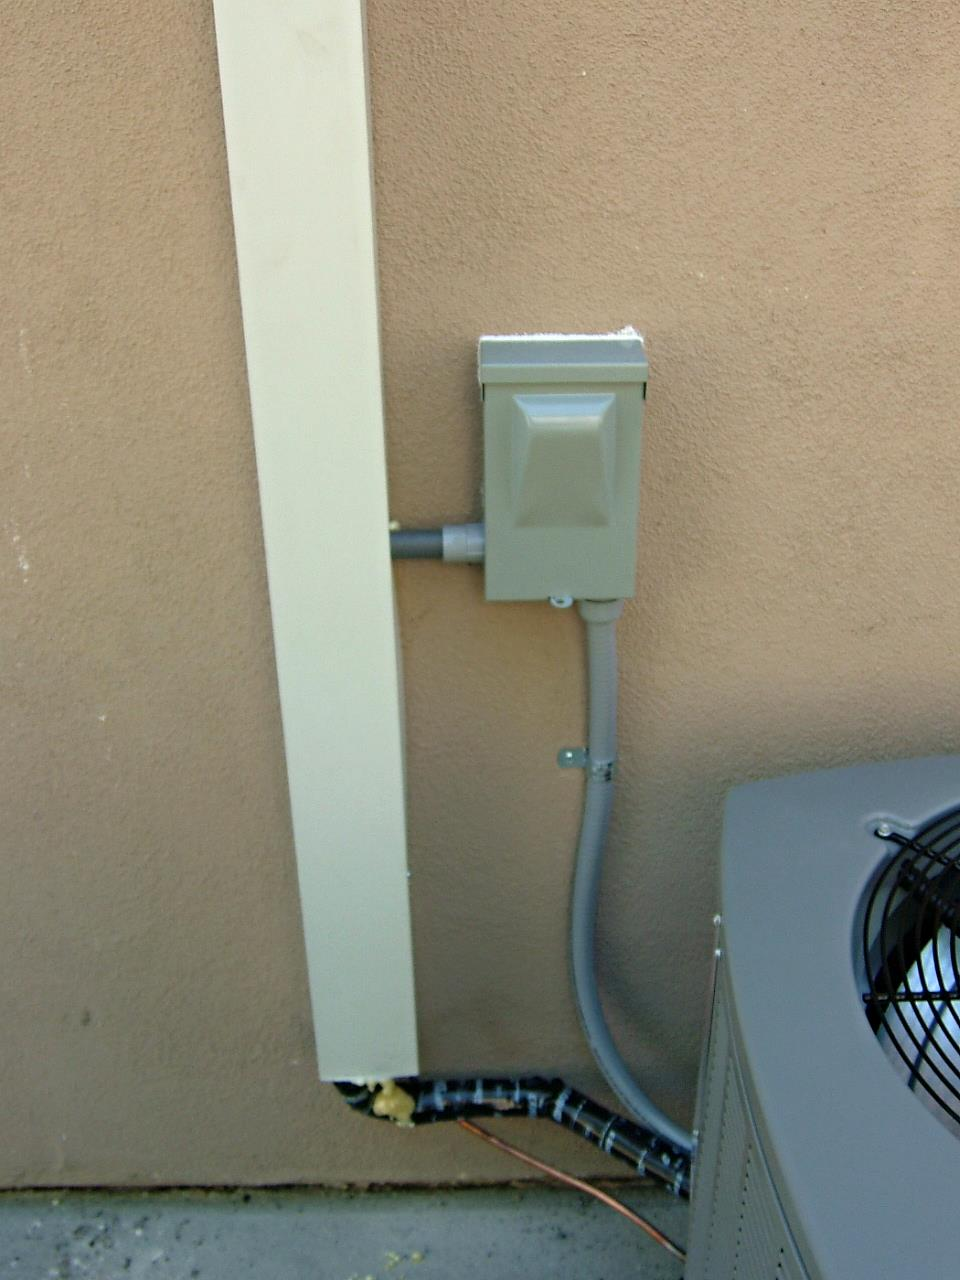 Line Set cover for an air conditioning system